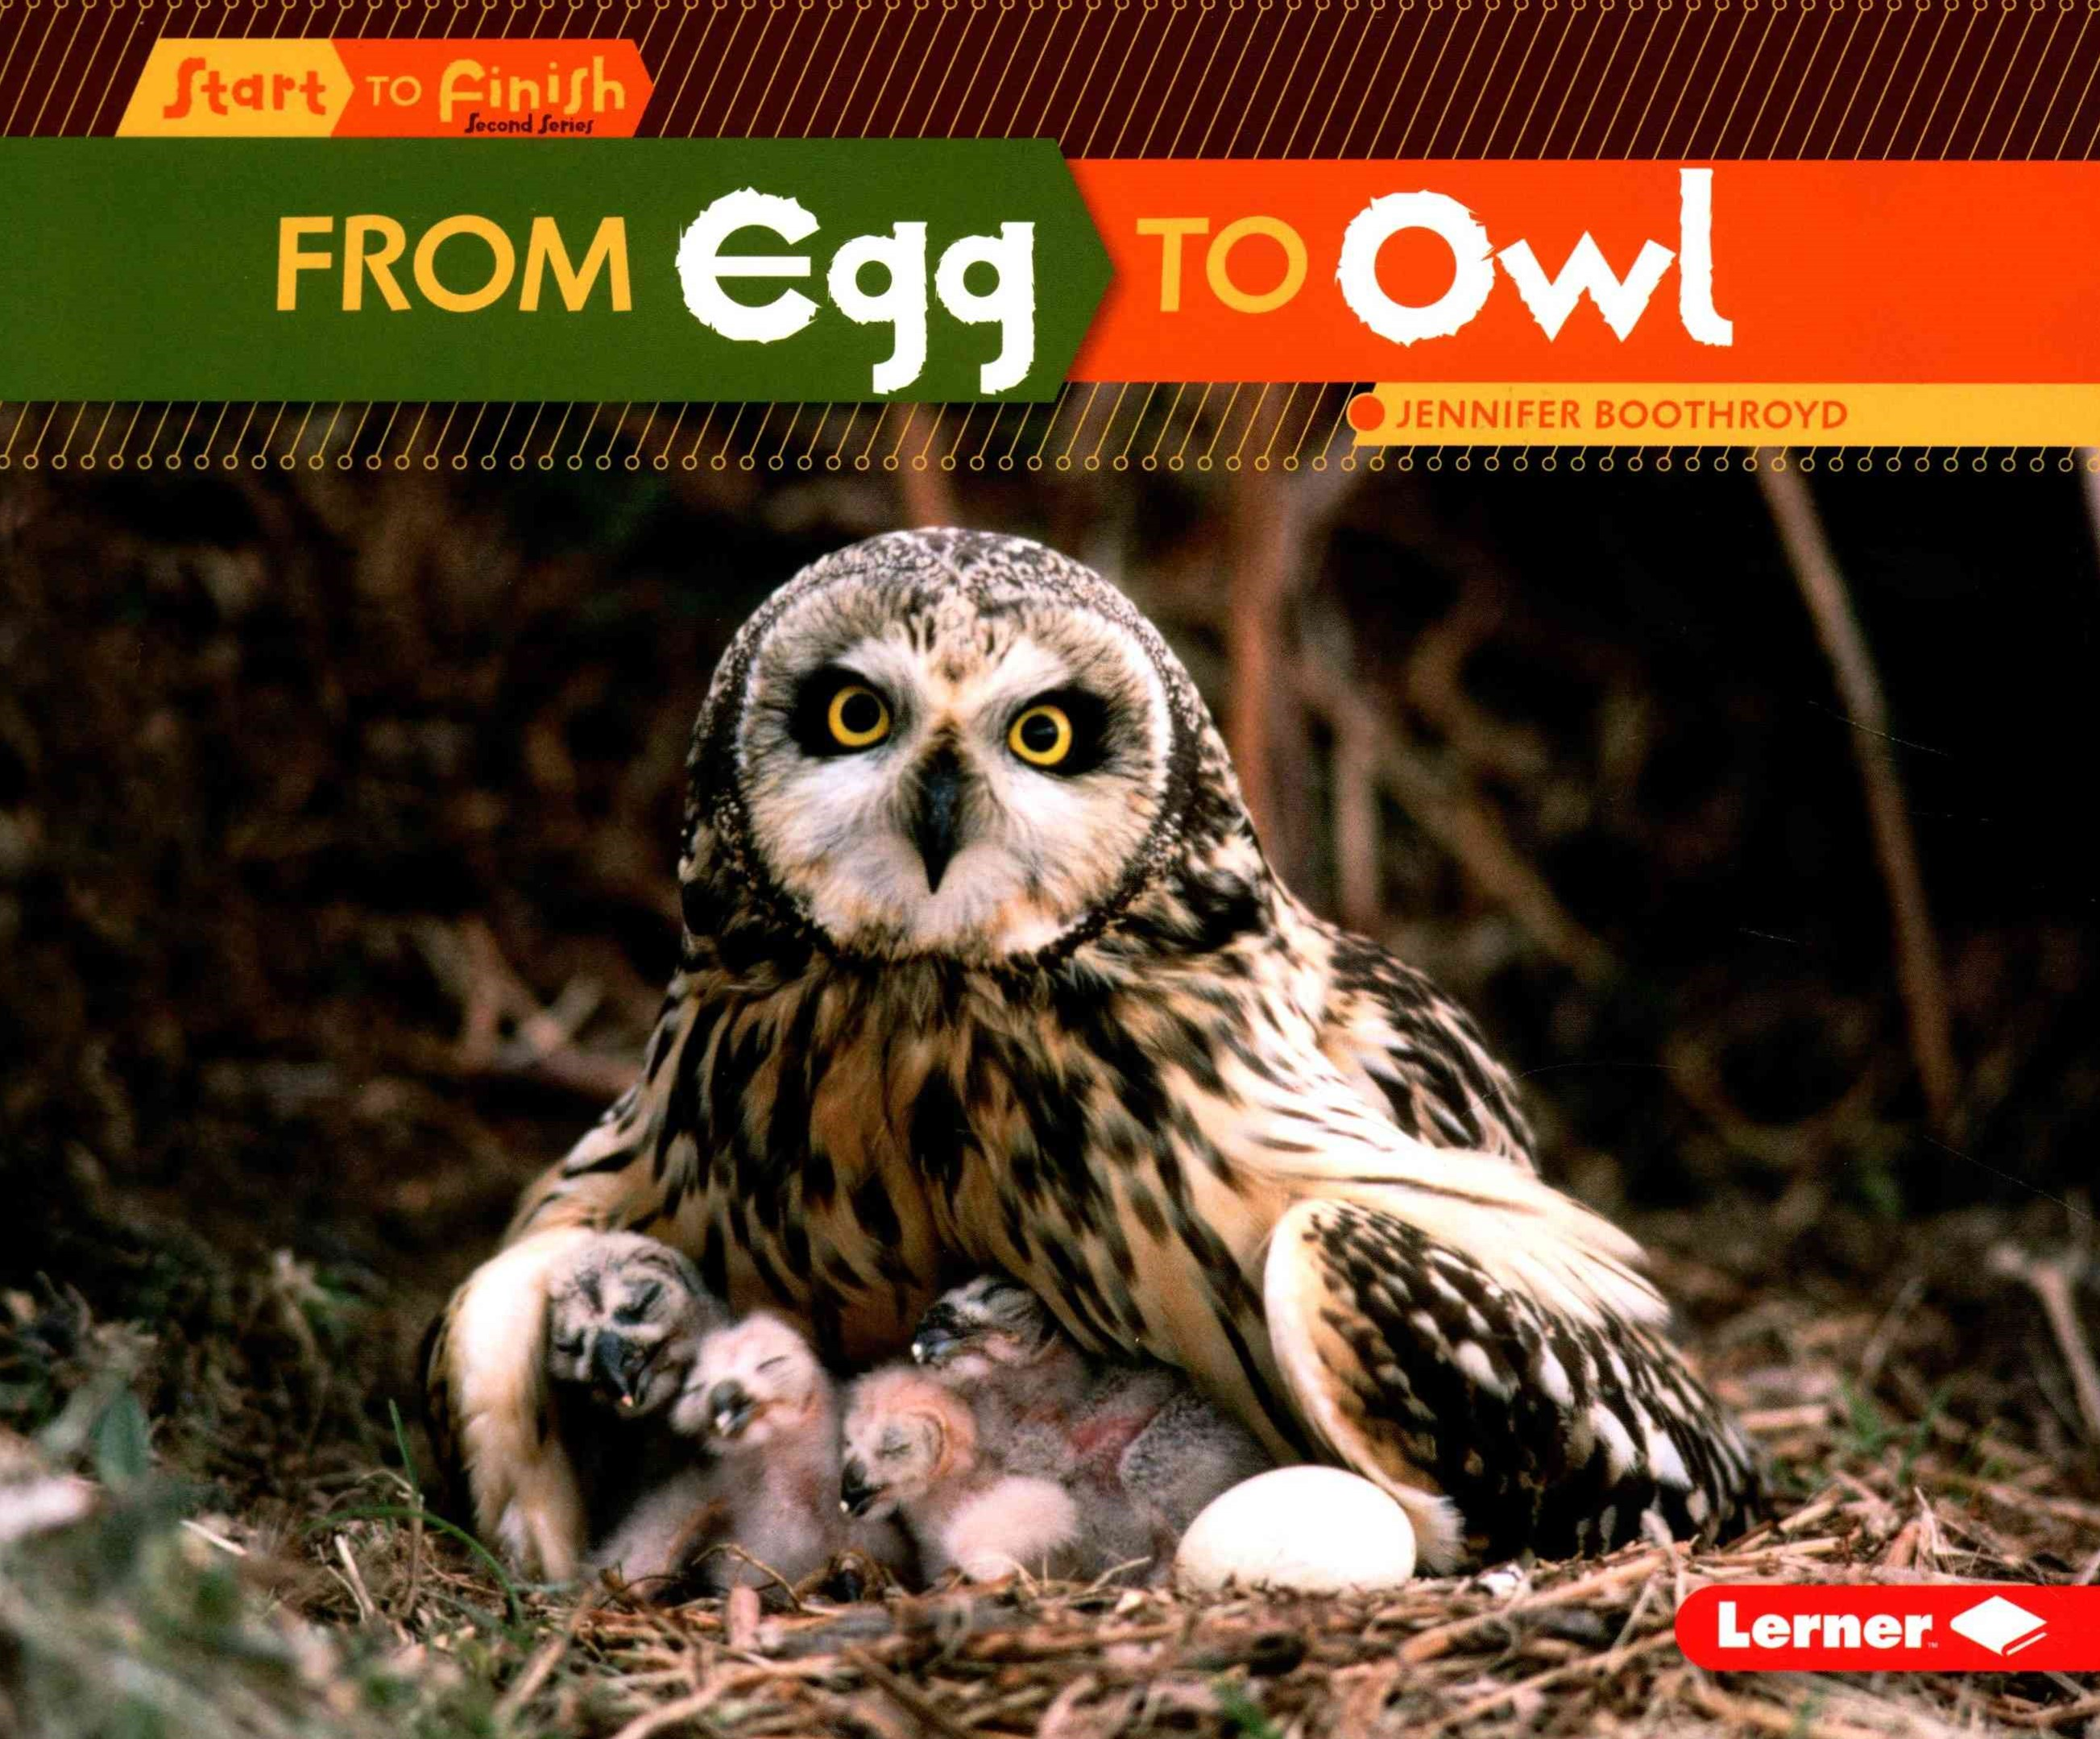 From Egg to Owl - Start to Finish Cycles